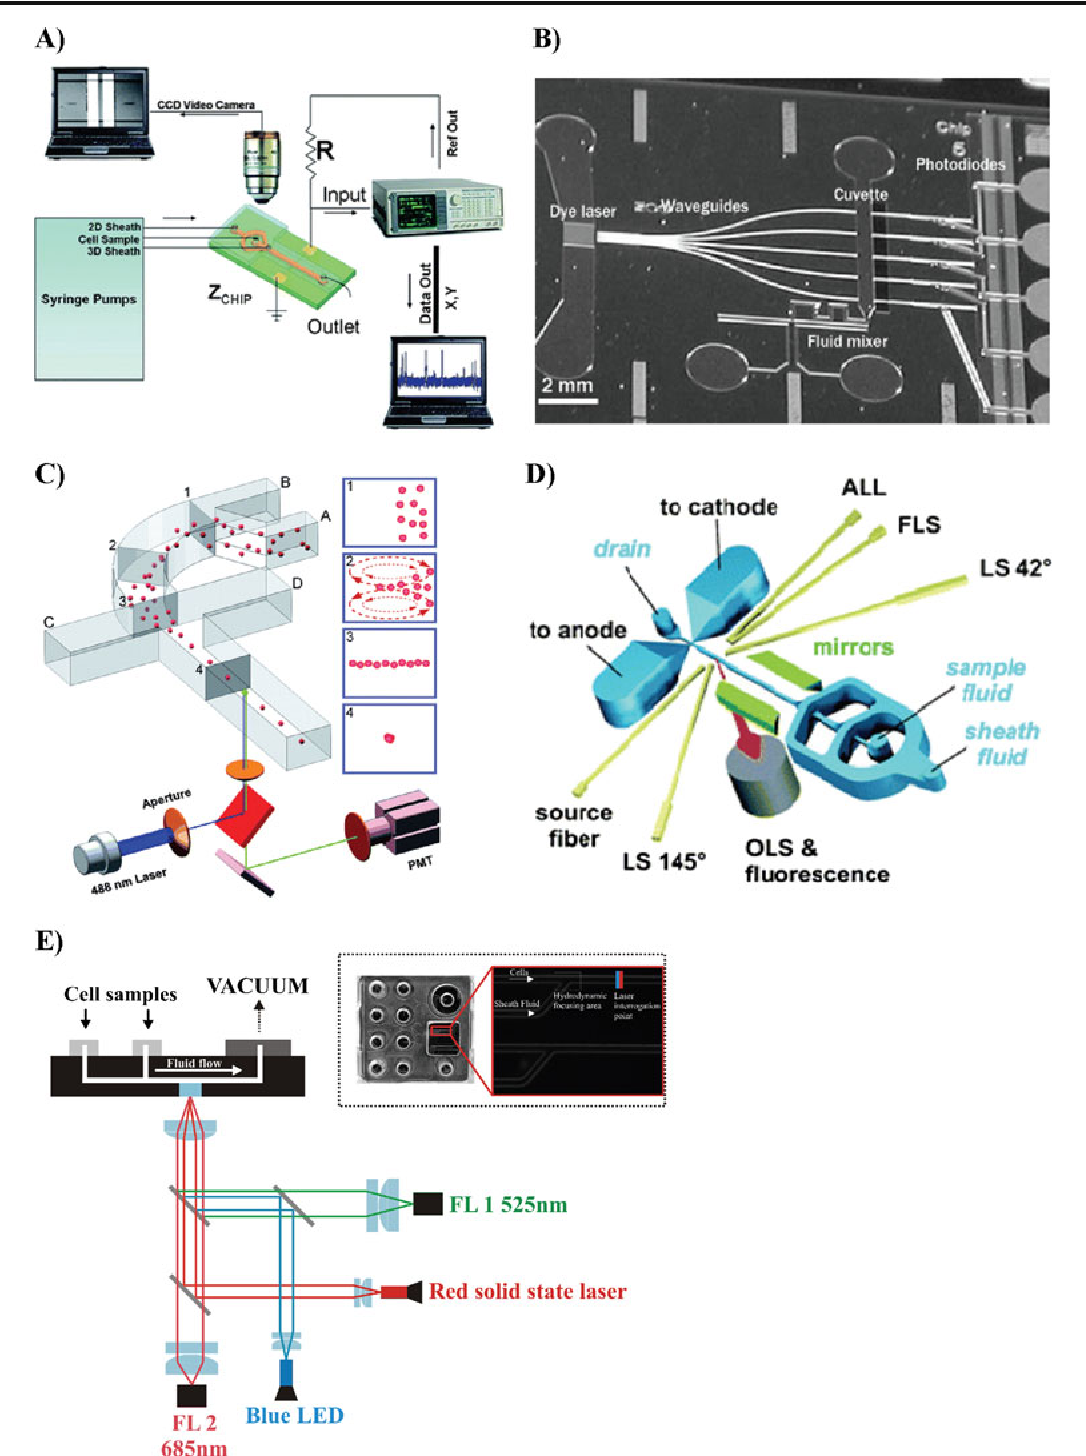 Fig. 7 Innovative microflow cytometers (µFCM). a Prototype of the electrical microcytometer with 3D hydrofocusing. Experimental setup: syringe pumps control sample and sheath flows through the sensing region, which is connected to the external circuit via micro-manipulators. (Reproduced with permission from The Royal Society of Chemistry (RSC) from ref. [91].) b Prototype of the lab-on-a-chip cytometer with integrated microfluidic dye laser, optical waveguides, microfluidic network and photodiodes. (Reproduced with permission from The Royal Society of Chemistry (RSC) from ref. [108].) c Single-layer planar microcytometer utilizing innovative drifting based 3D hydrodynamic focusing. (Reproduced with permission from The Royal Society of Chemistry (RSC) from ref. [92].) d Prototype of the microfluidic flow cell with a two-stage cascaded hydrodynamic focusing, integrated